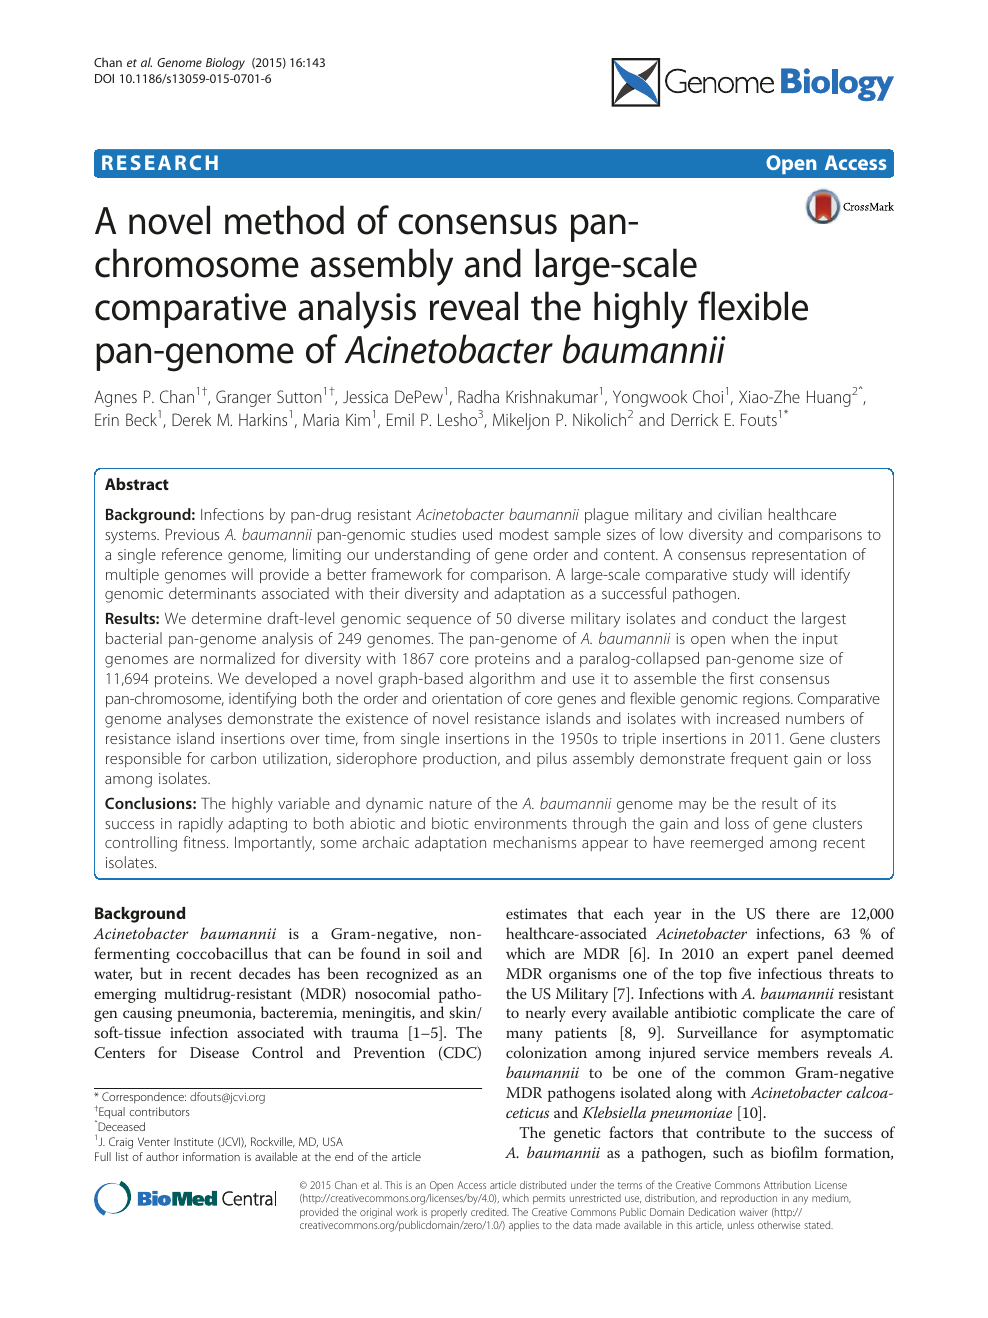 A novel method of consensus pan-chromosome assembly and